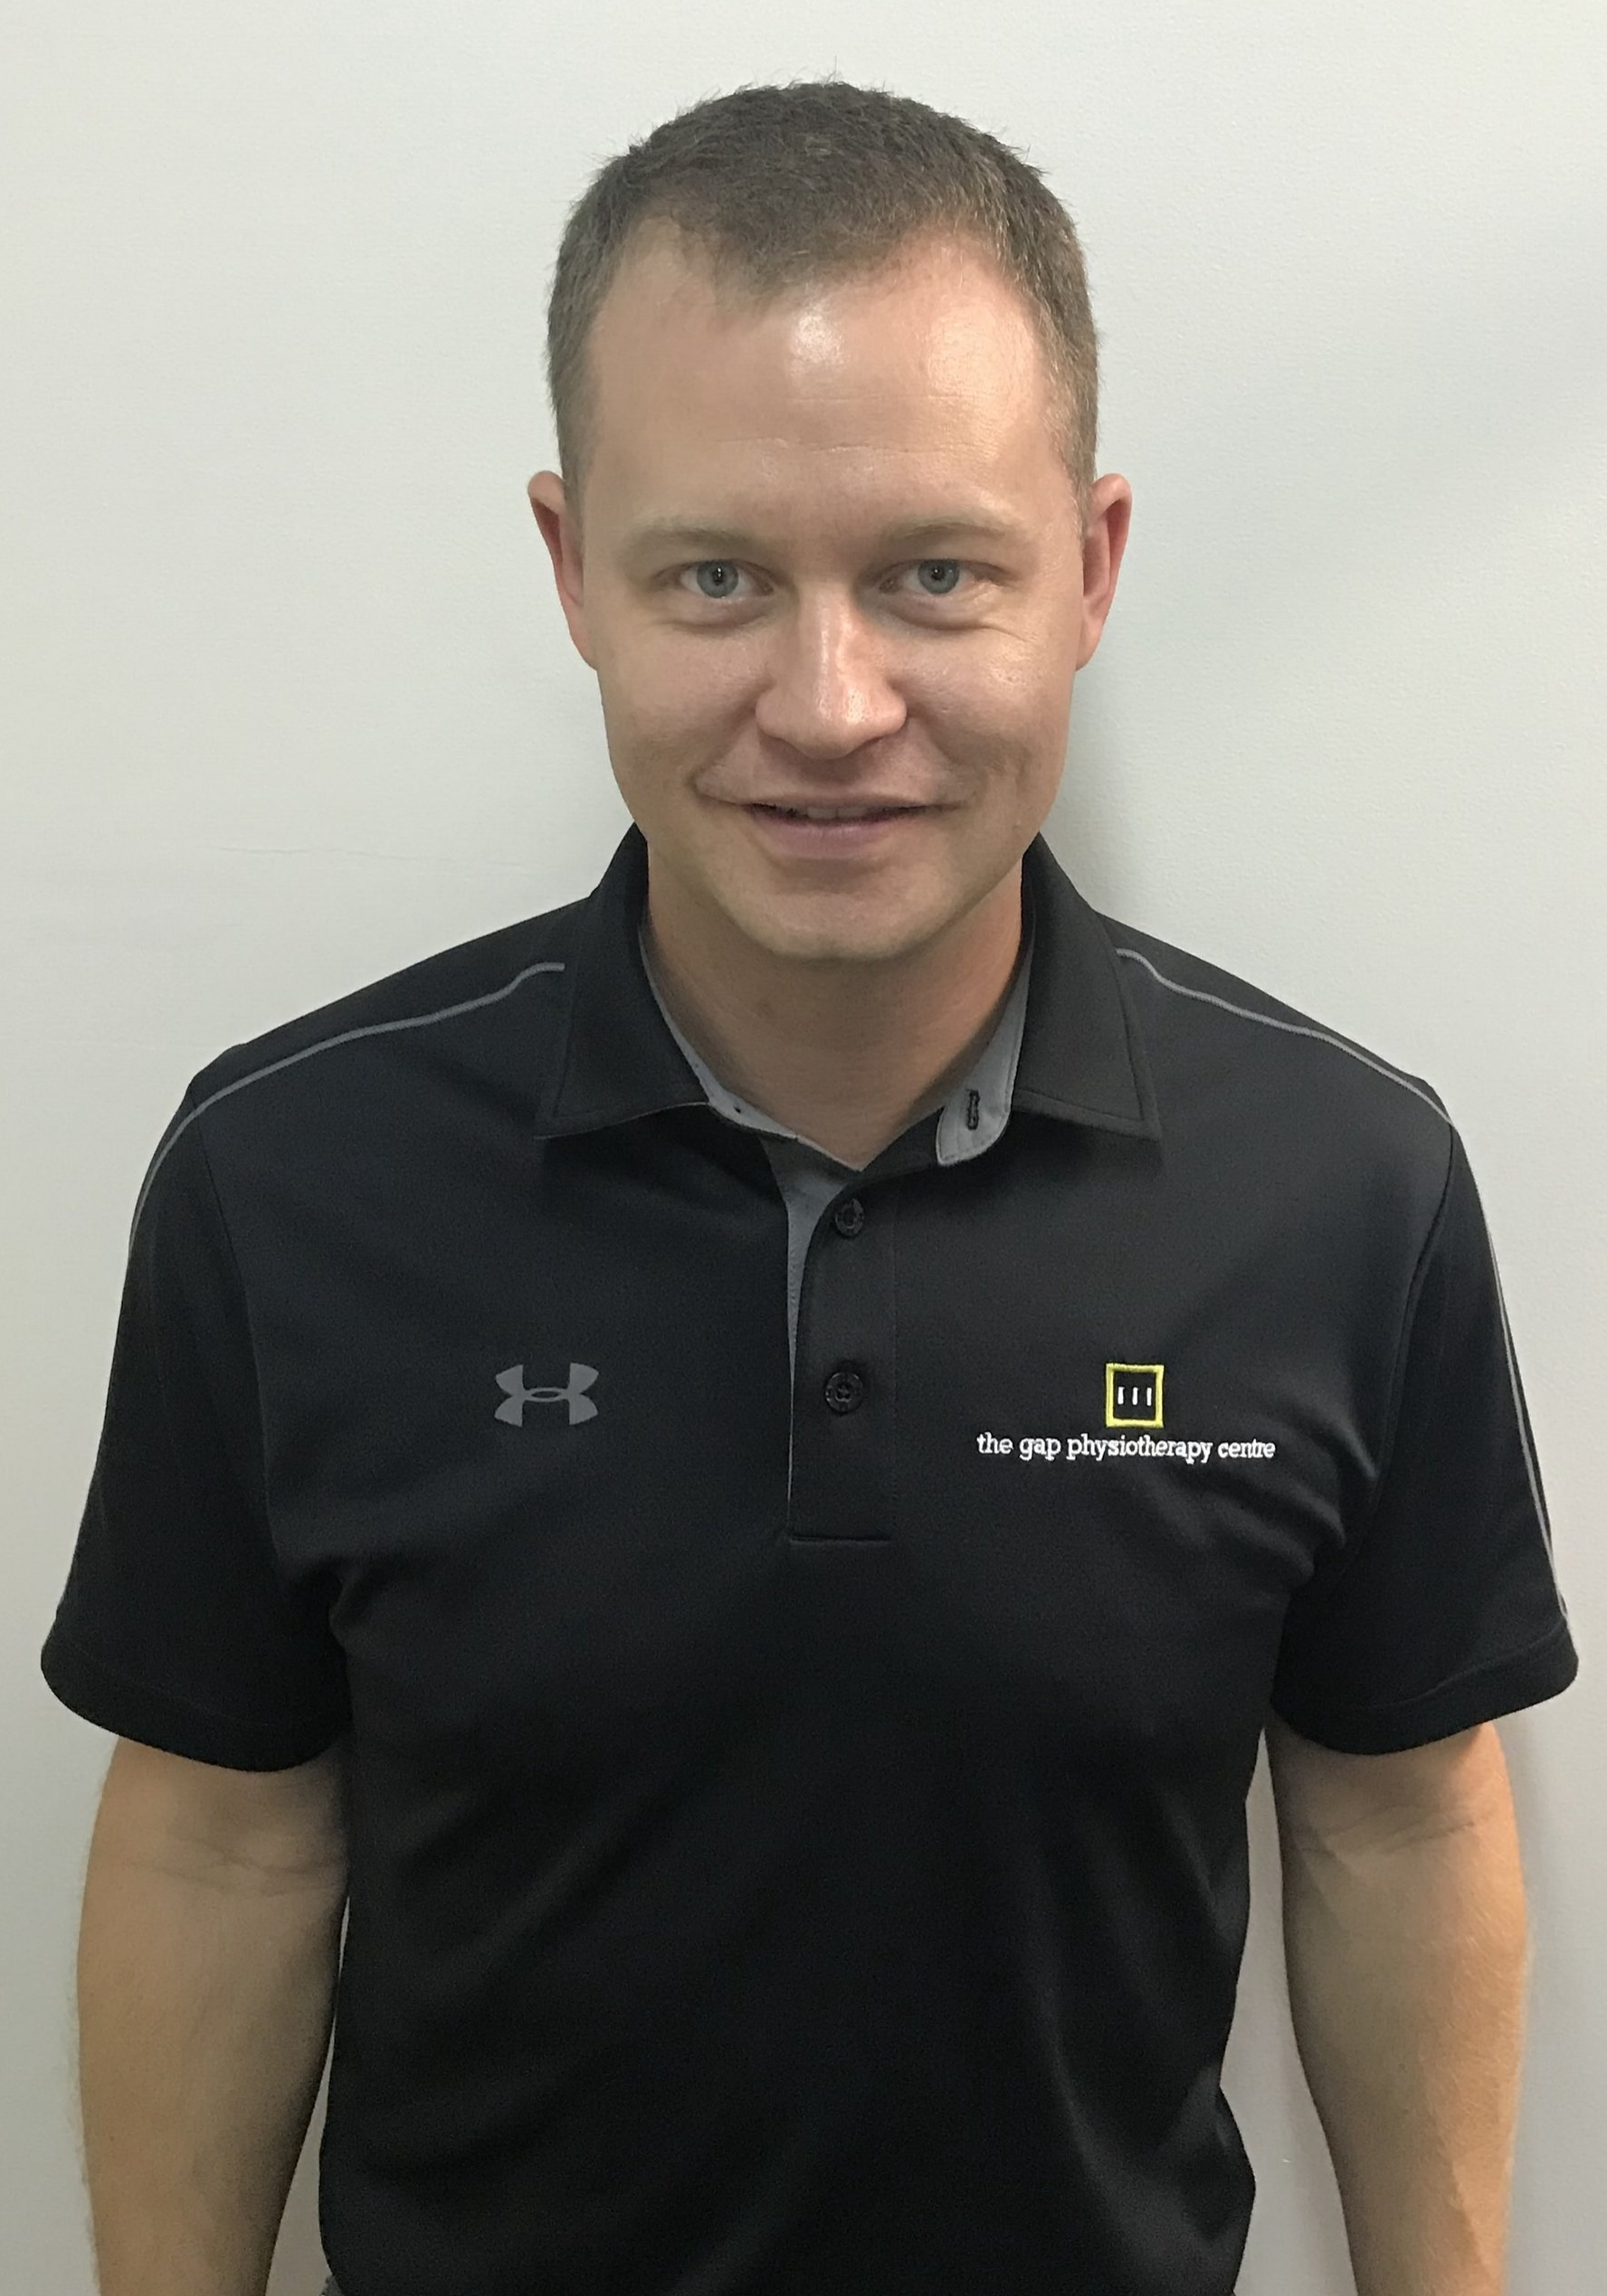 DAVID MCCARTNEY - BPhty, MAPA, FR & FRA Certified David graduated from the University of Queensland in 2004 and has been working at The Gap Physiotherapy Centre since.  He has a keen interest in all musculoskeletal conditions especially sporting injuries and also has experience treating vestibular disorders.  In 2007 David became a partner with Danny in the practice. In 2017 David became one of the first Functional Range Release Certified Practitioners in Australia, and the principles of functional movement assessment and treatment form a framework for his treatments.   To continue implementing the Functional Range System David completed the FRA certification in early 2018 becoming one of the first practitioners in Australia to do so. -